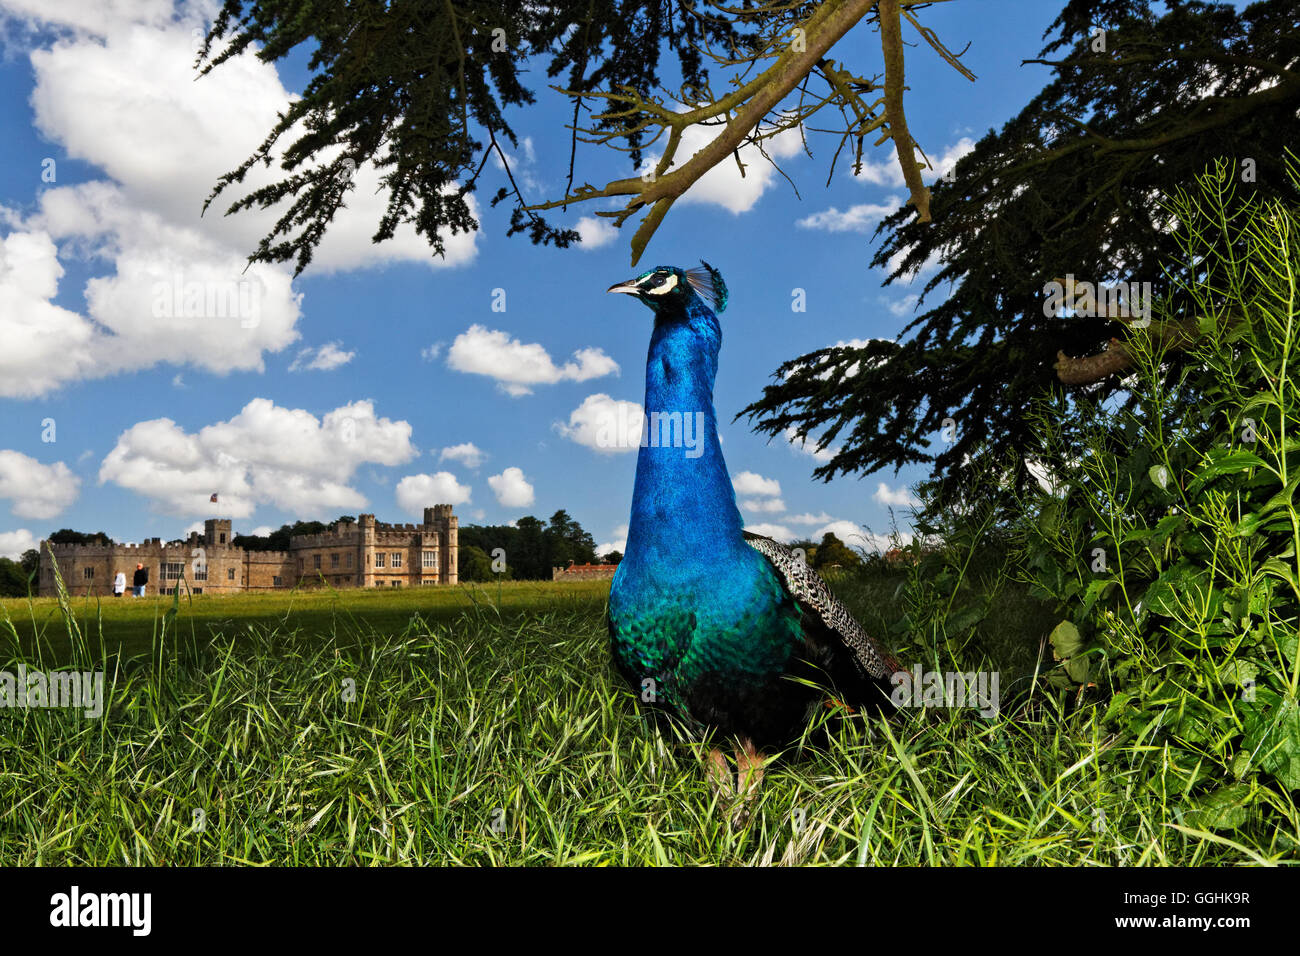 Peacock at Leeds Castle, Maidstone, Kent, Angleterre, Grande-Bretagne Photo Stock